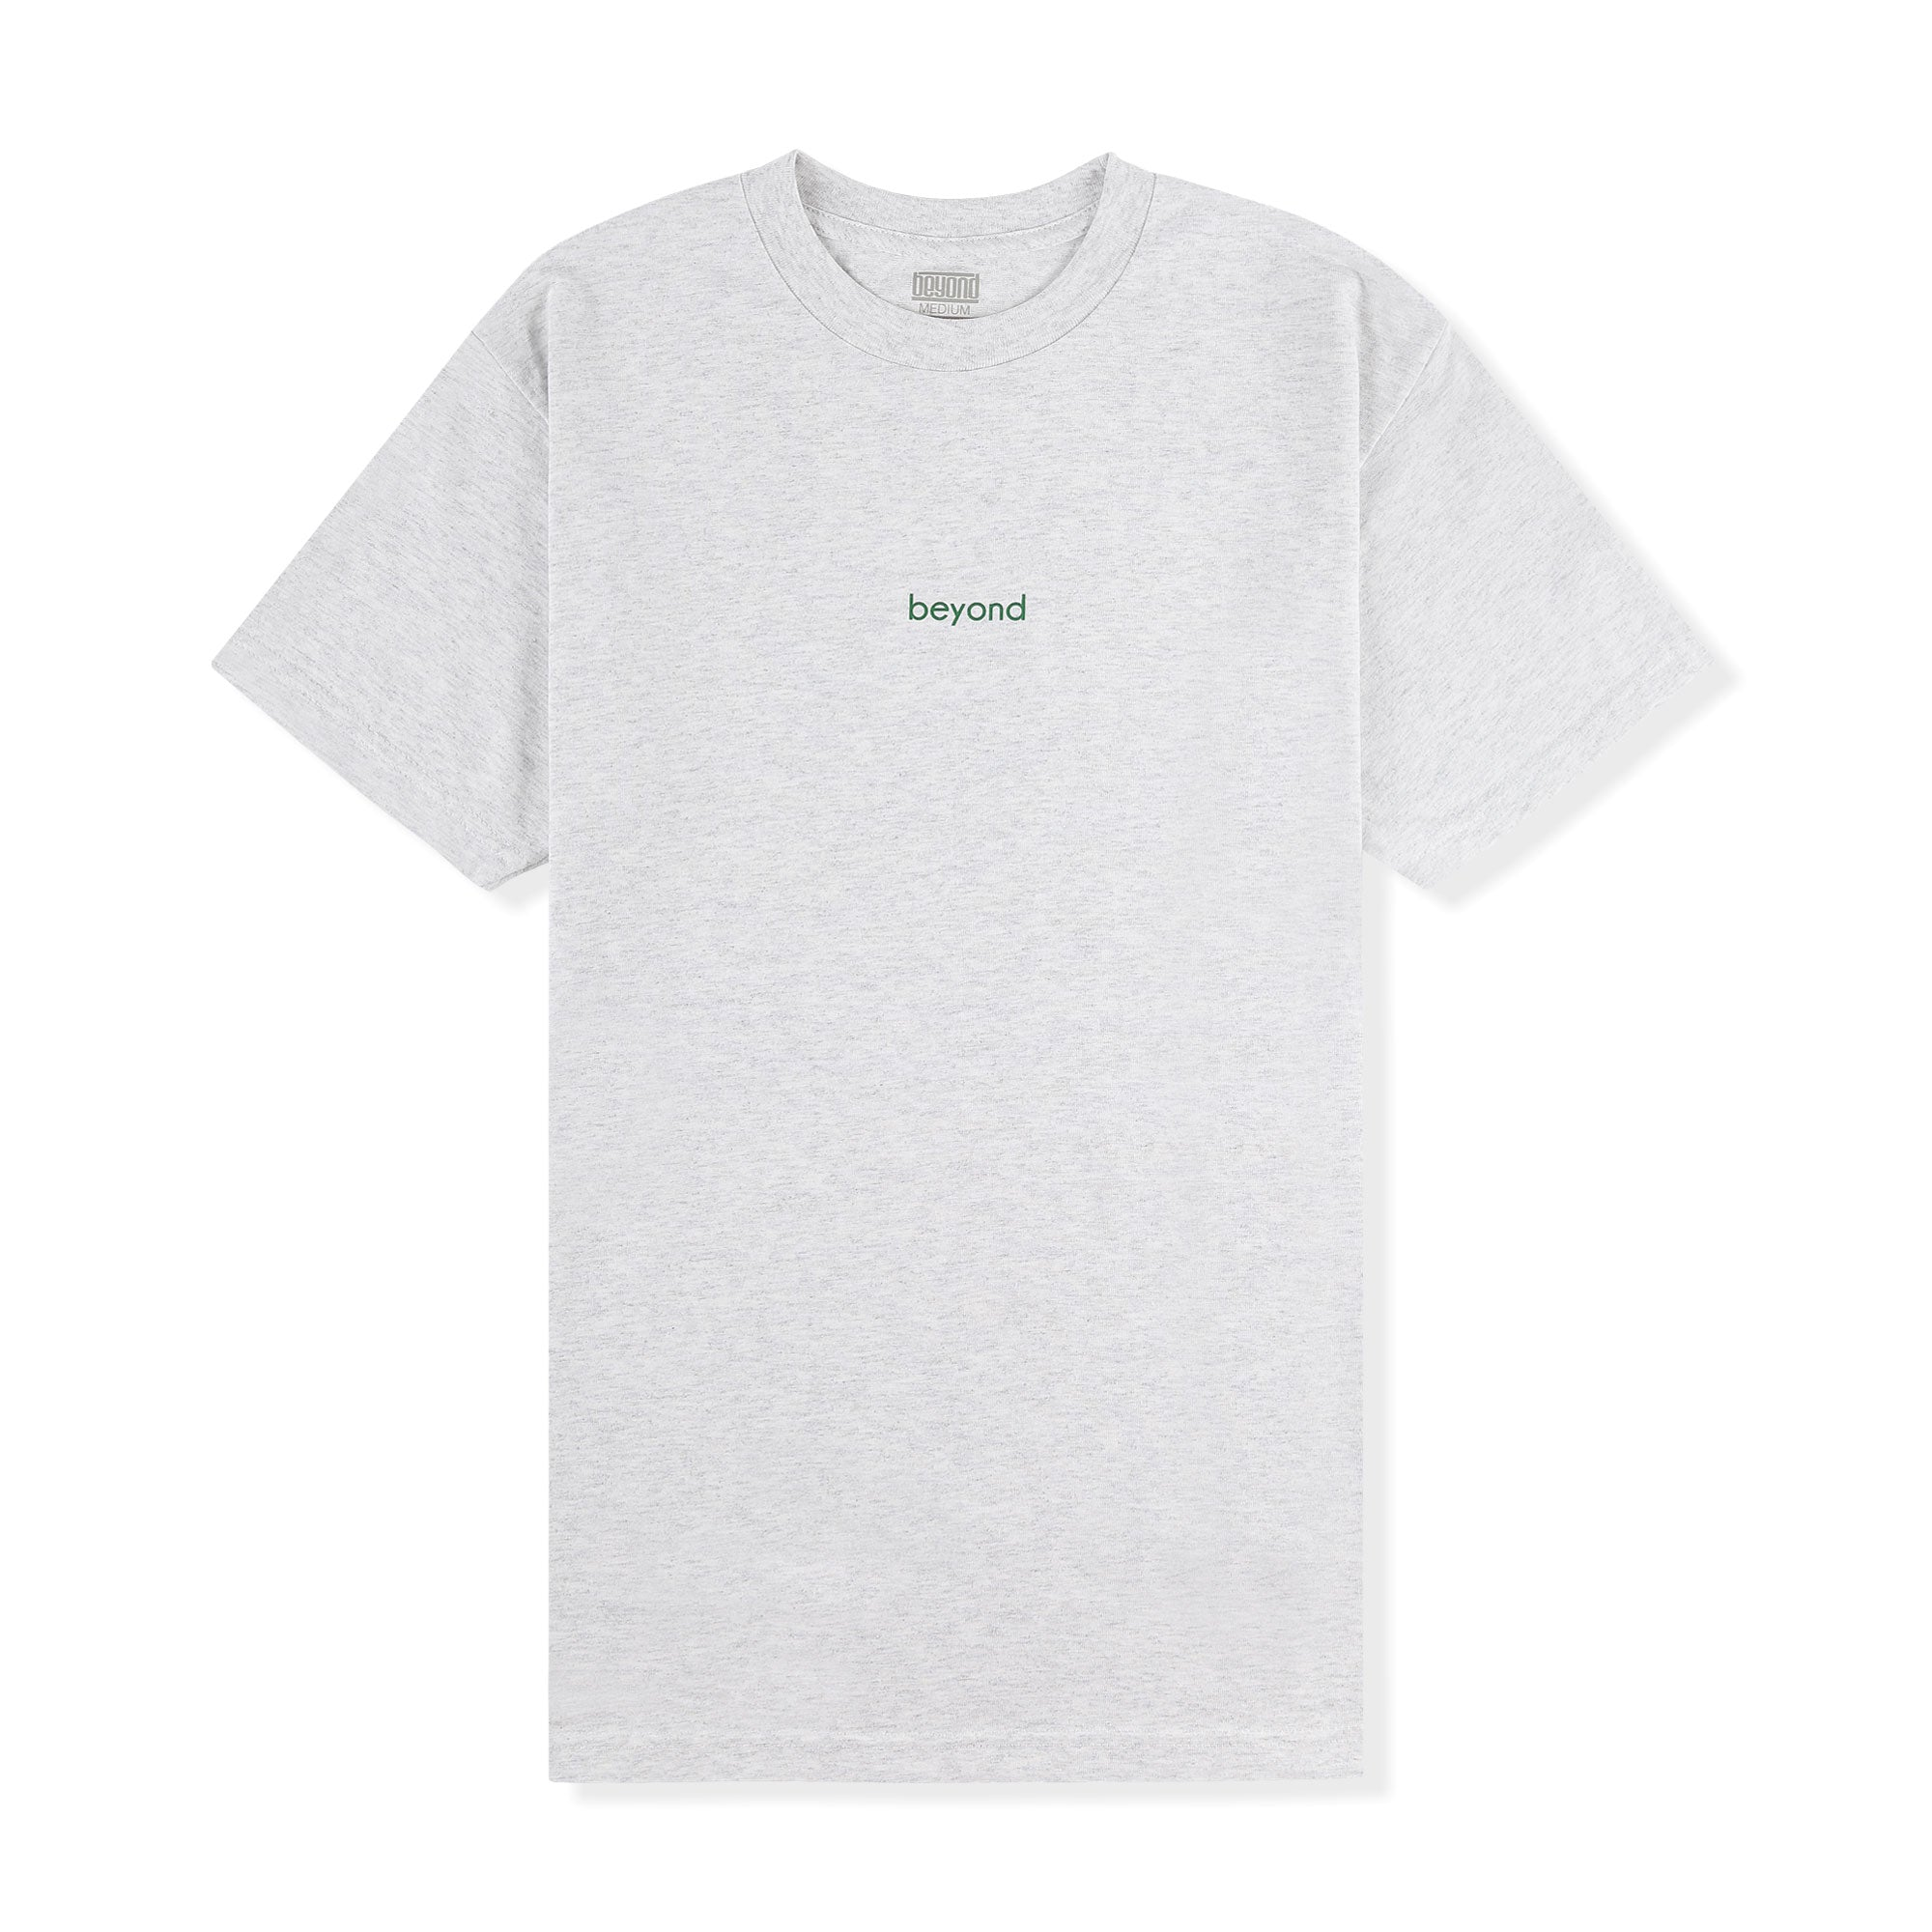 Beyond Lil Logo Tee Product Photo #1